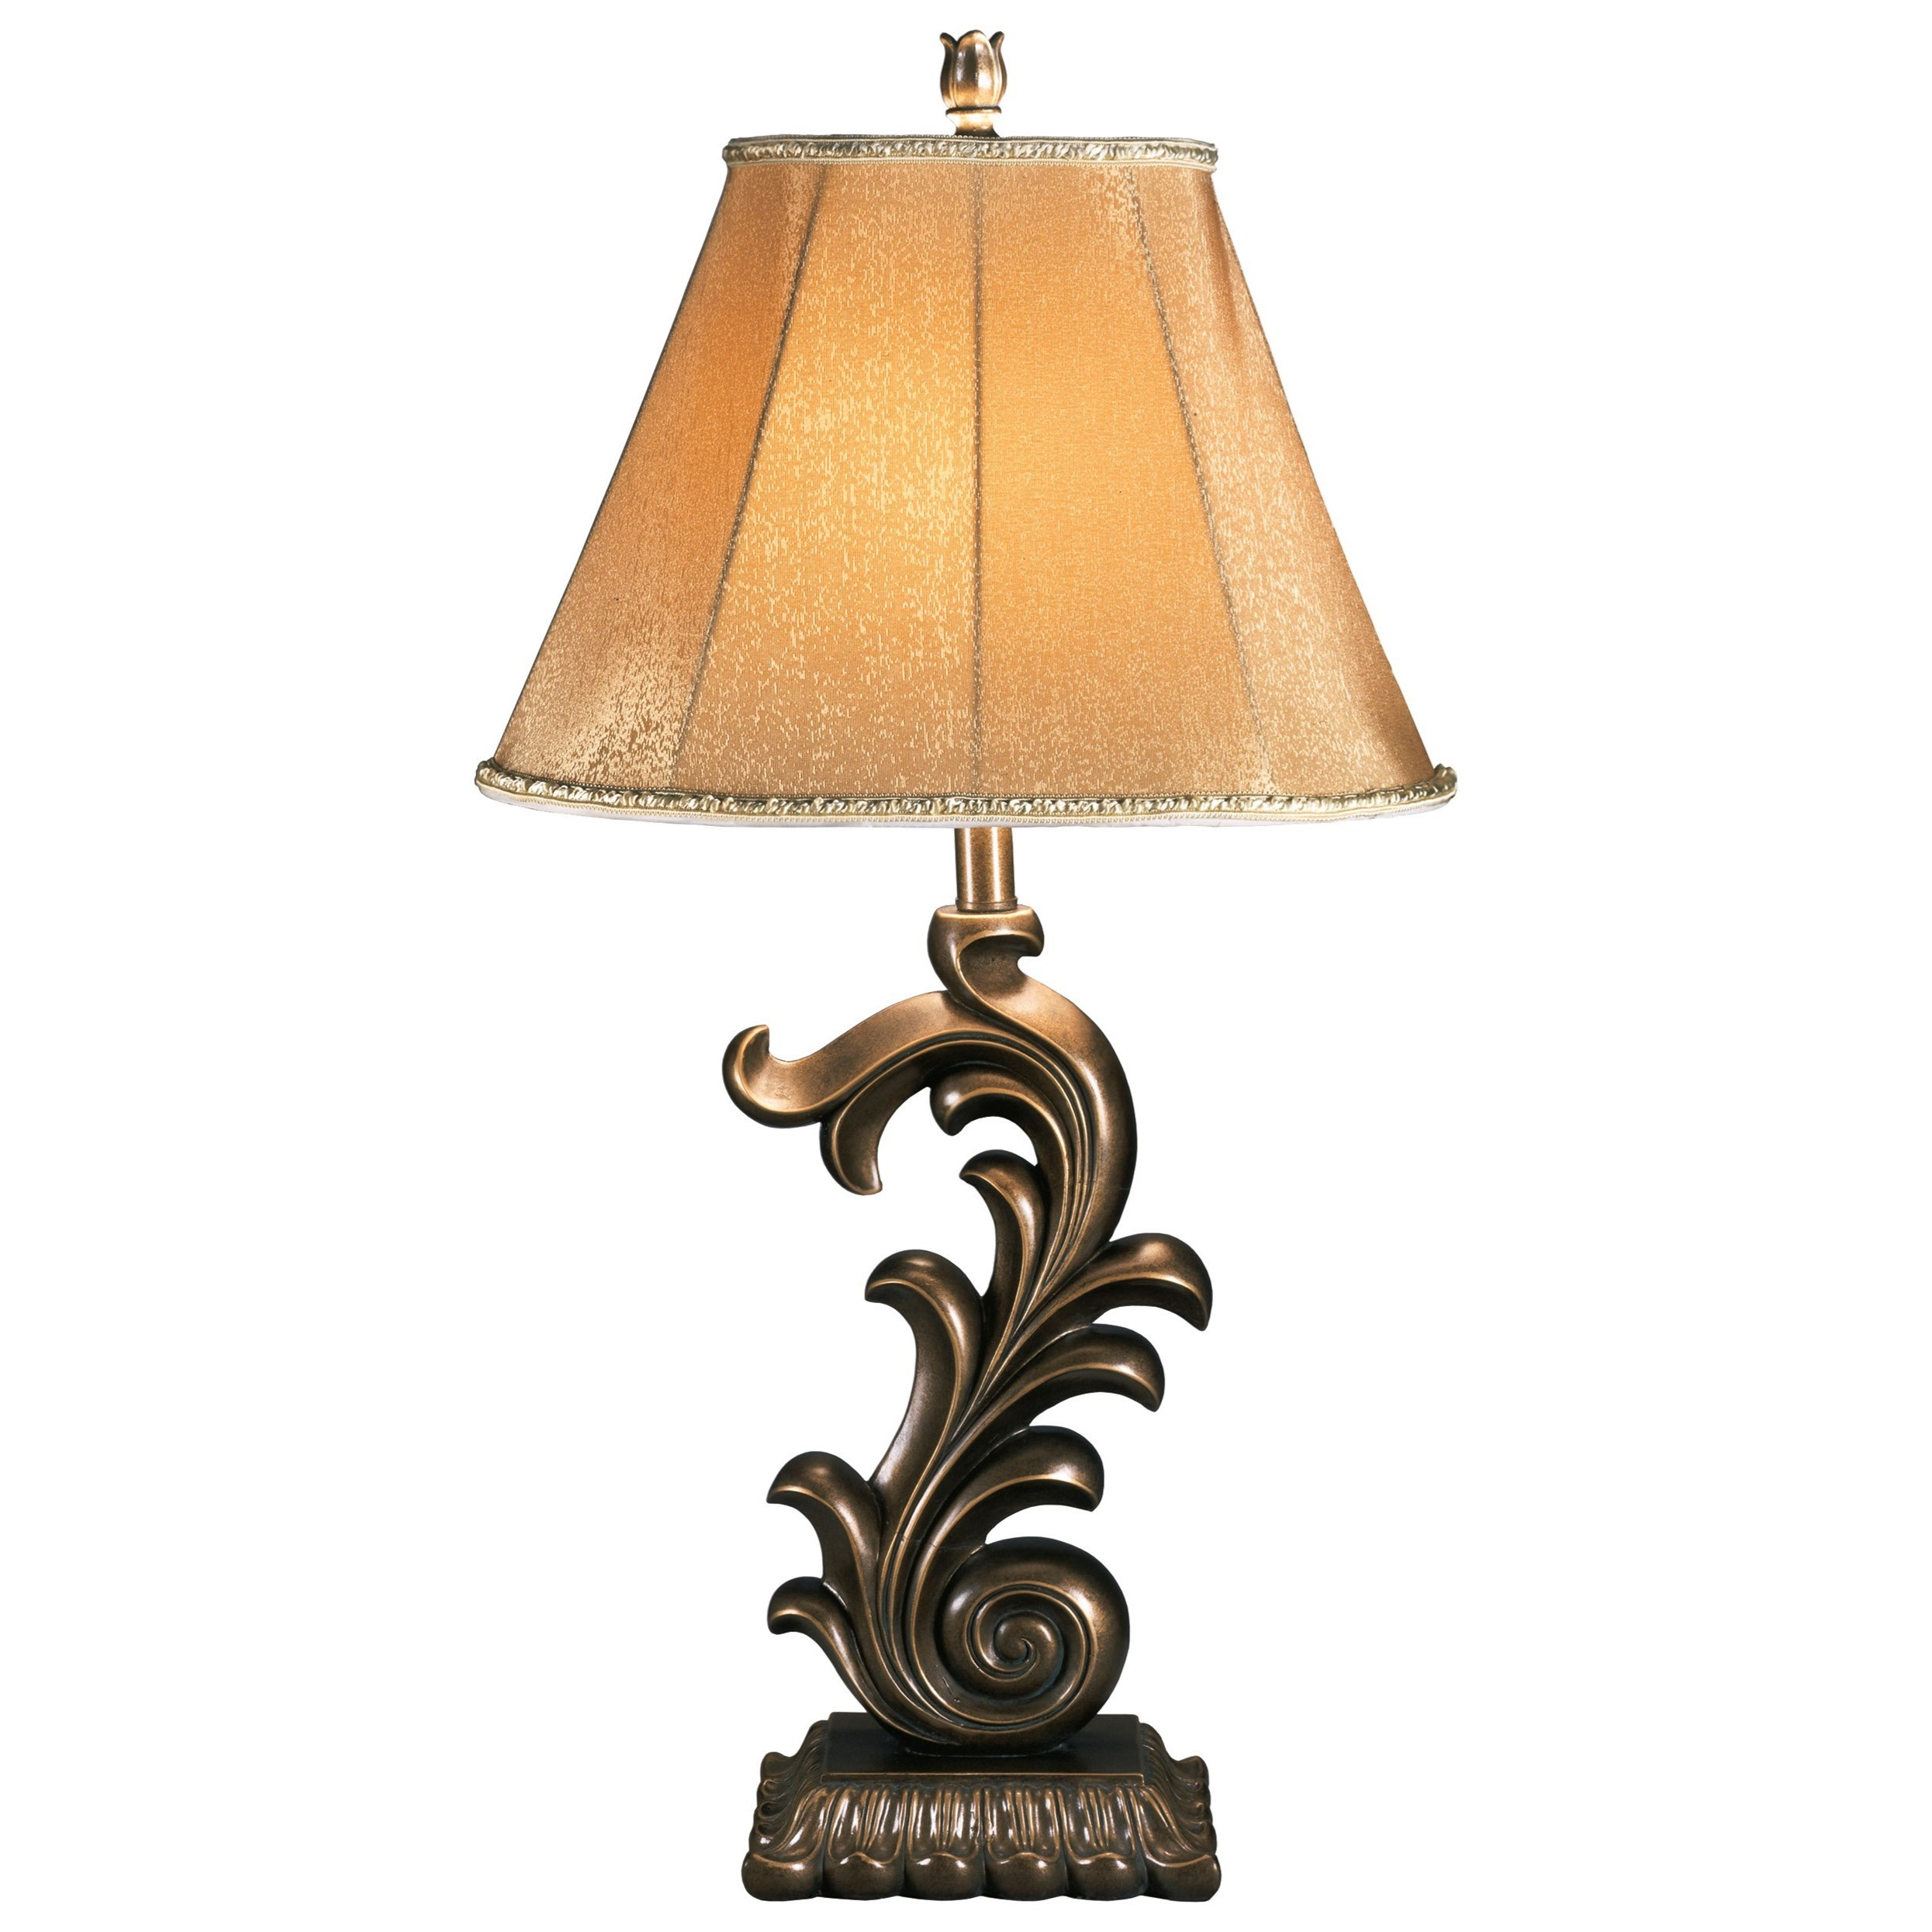 Signature Design by Ashley Lamps - Traditional Classics Set of 2 Eliza Table Lamps - Item Number: L347784